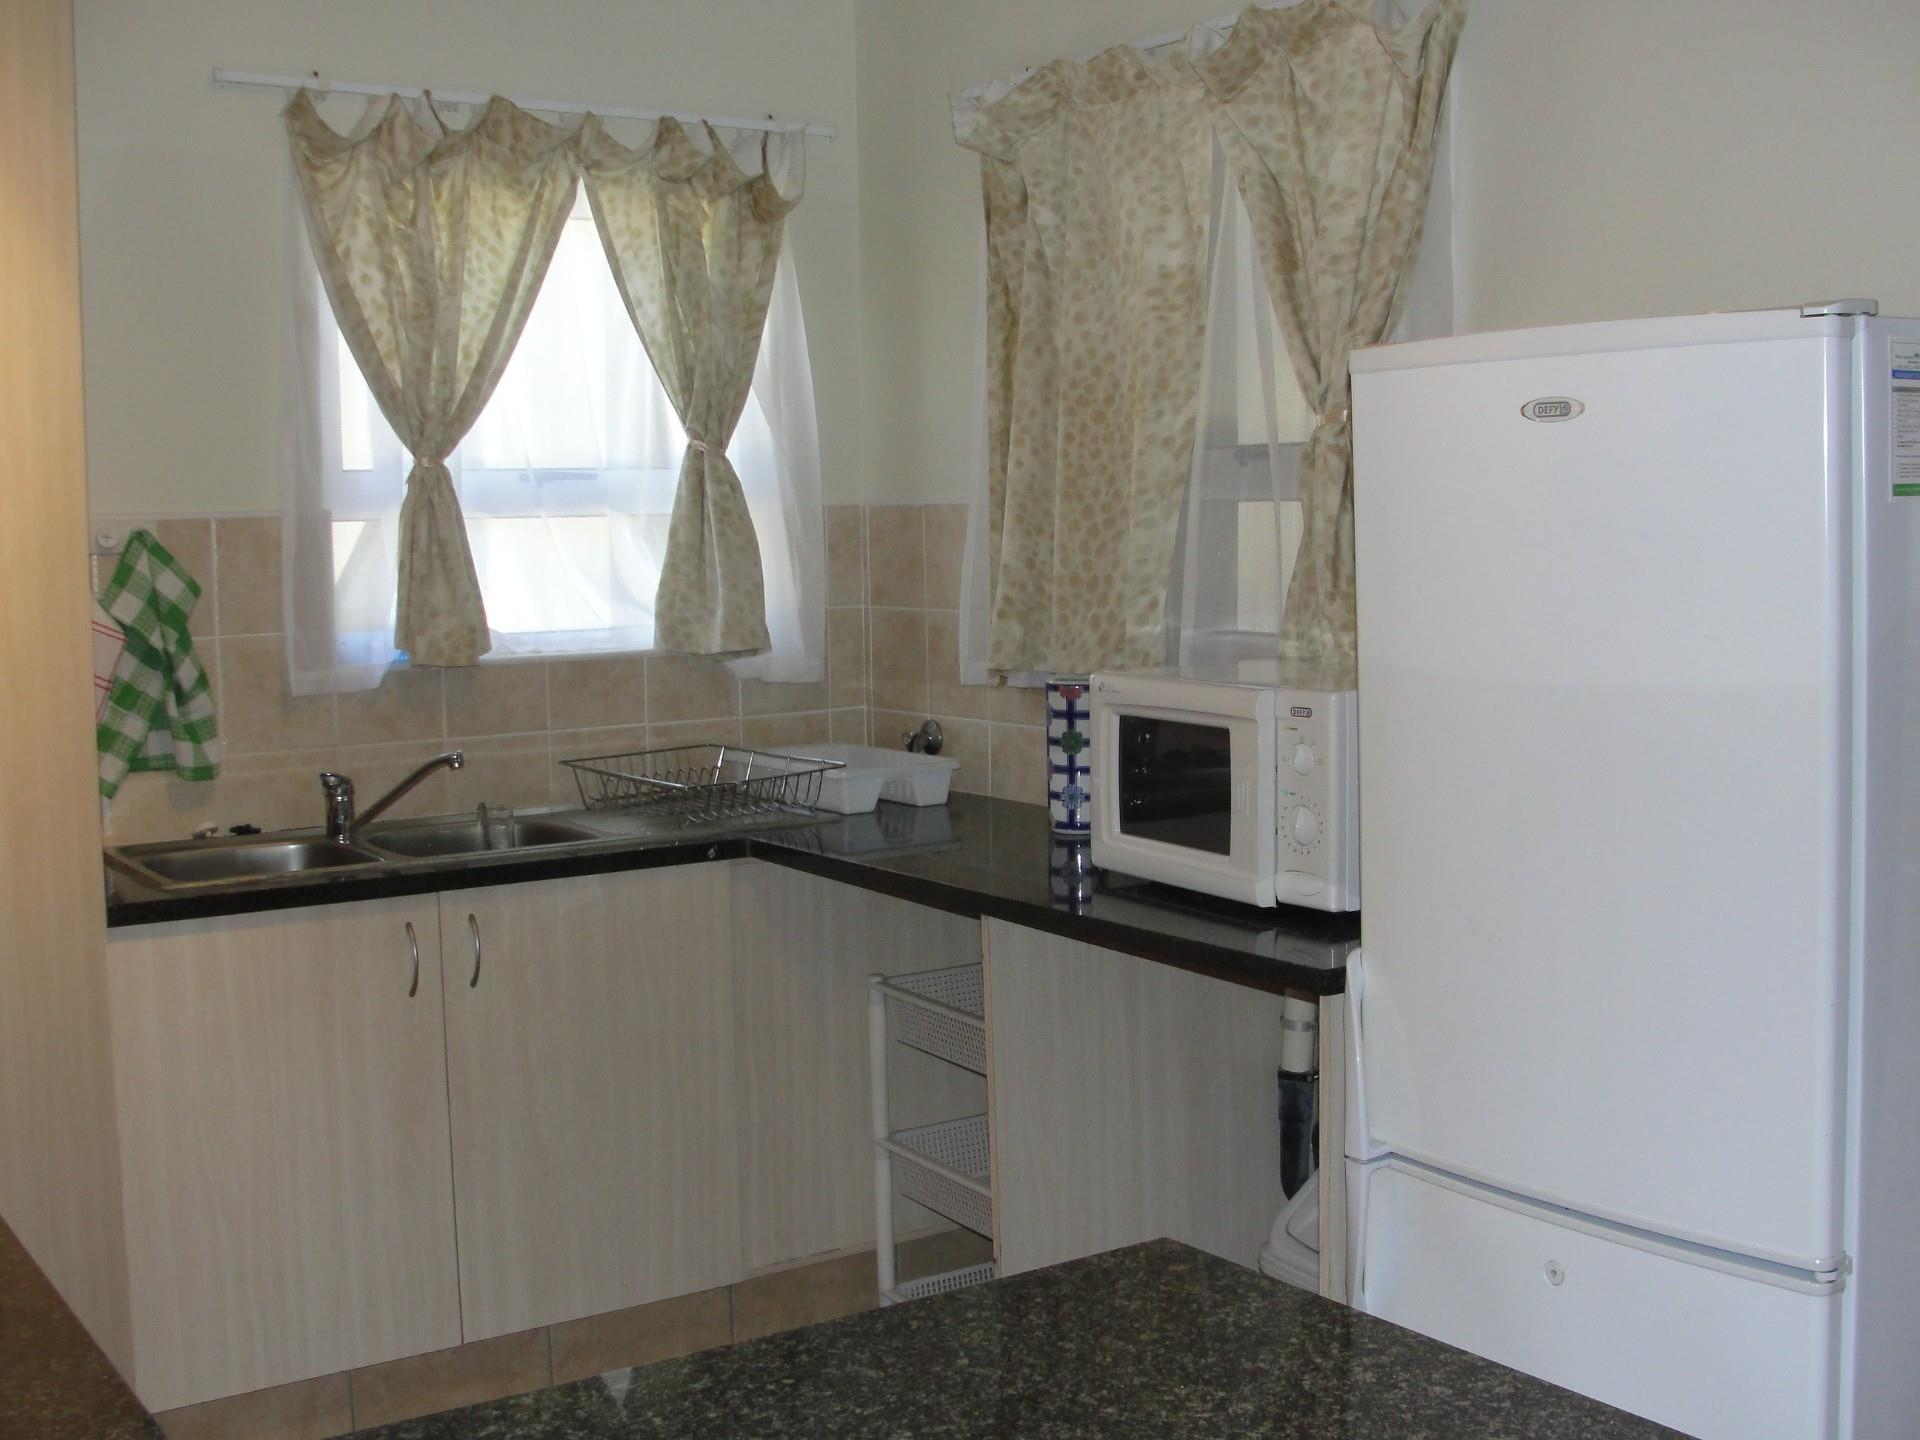 2 Bedroom Apartment / Flat For Sale in Shelly Beach